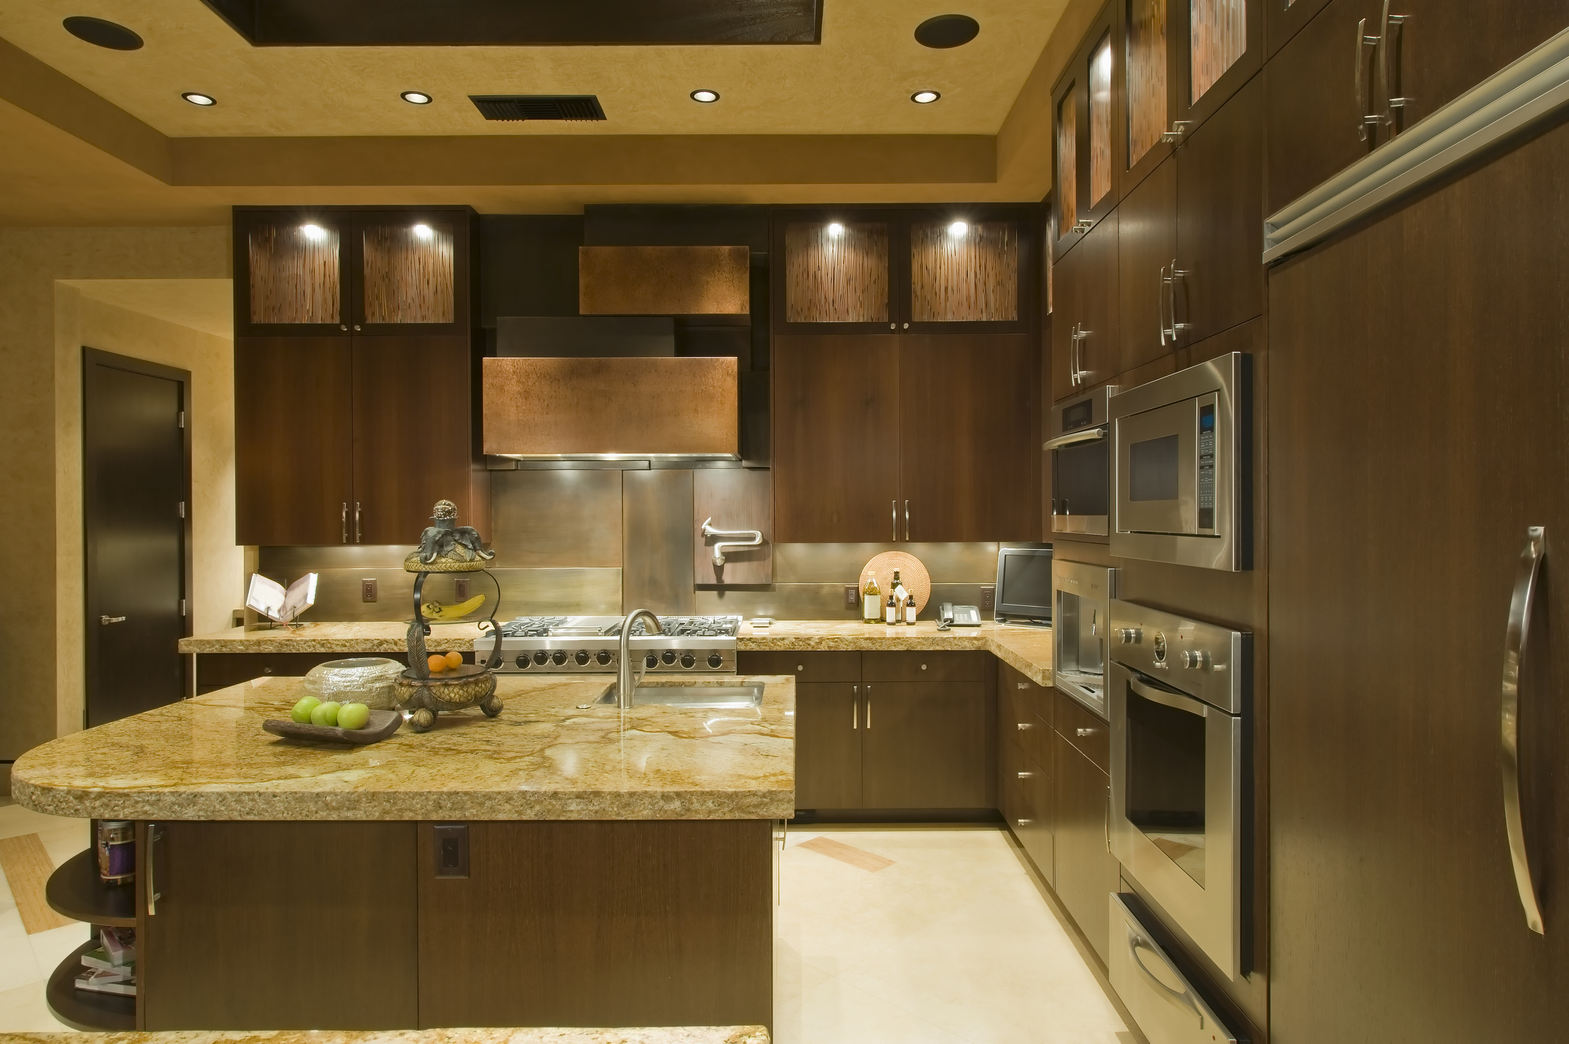 Dc kitchen remodeling trends for 2015 2016 for Kitchen remodel trends